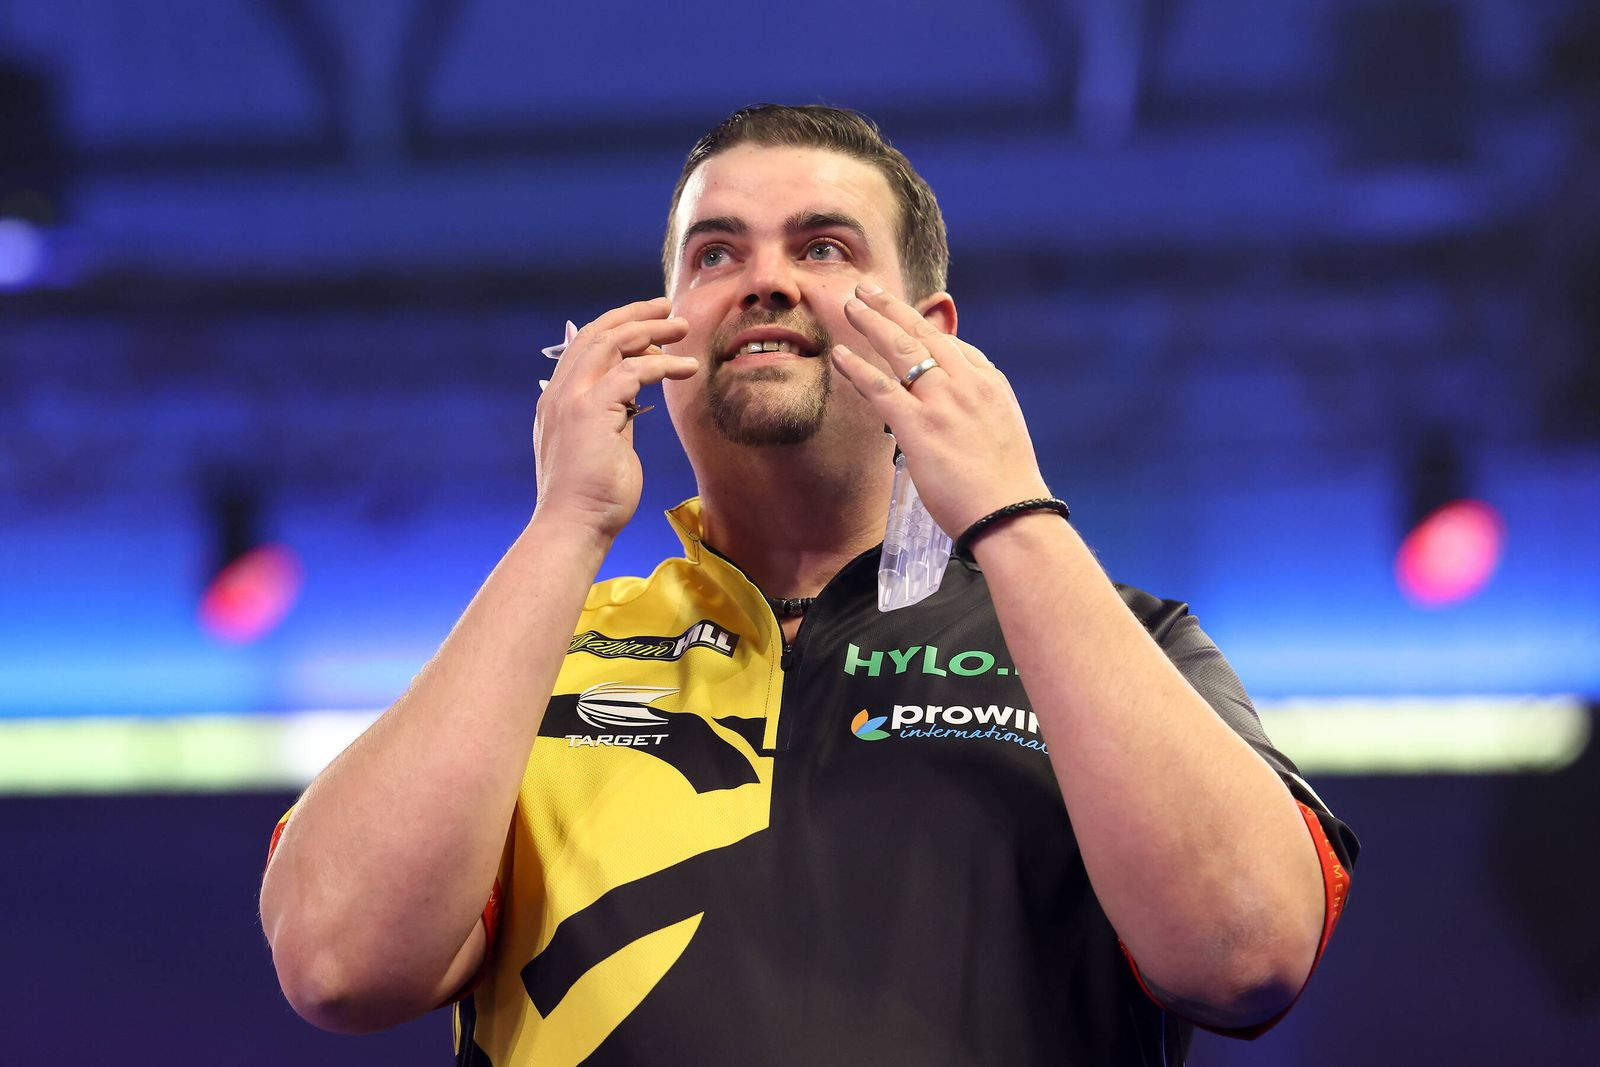 William Hill World Darts Championship 27/12/2020. Gabriel Clemens wins the match and celebrates during the third round